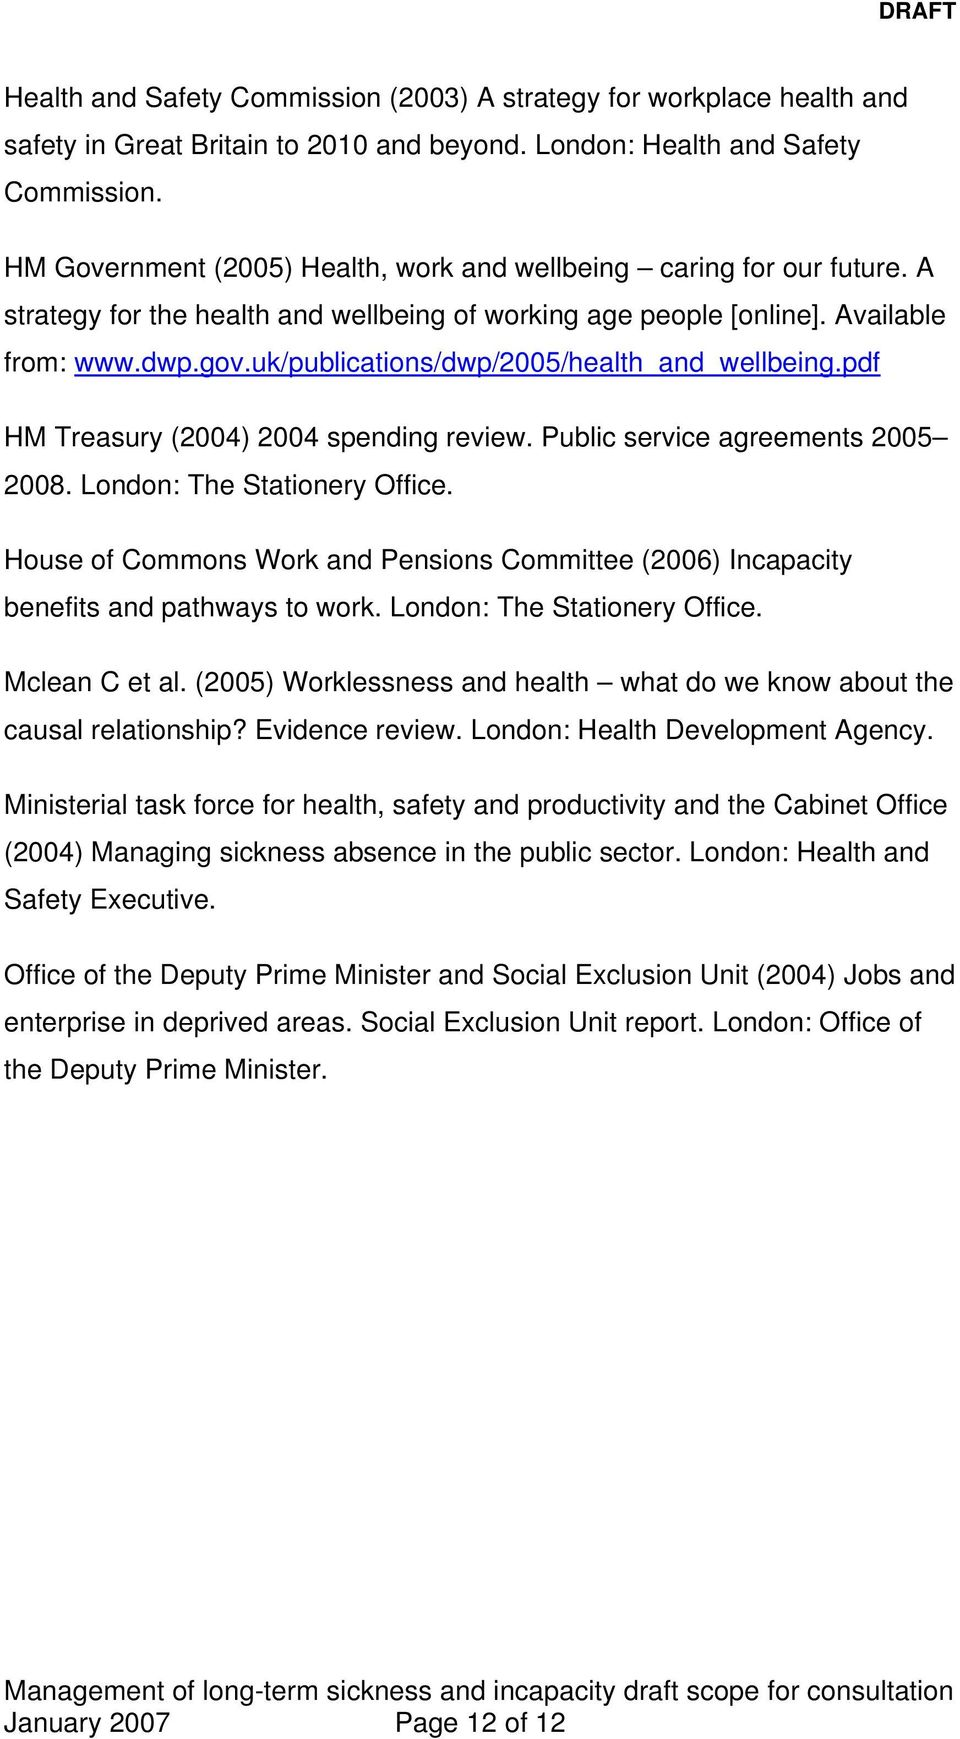 uk/publications/dwp/2005/health_and_wellbeing.pdf HM Treasury (2004) 2004 spending review. Public service agreements 2005 2008. London: The Stationery Office.